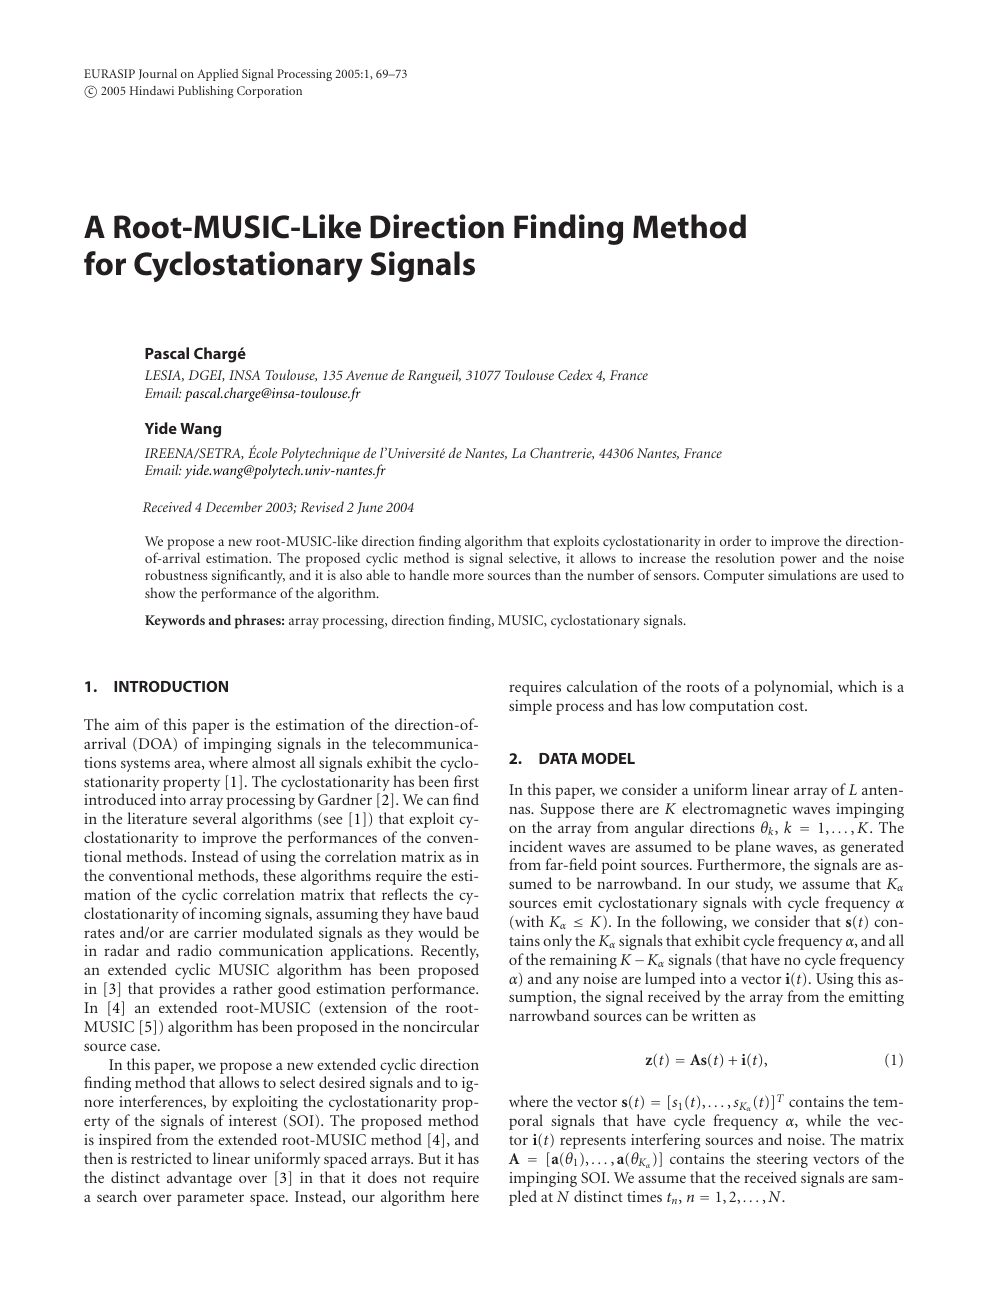 A Root-MUSIC-Like Direction Finding Method for Cyclostationary